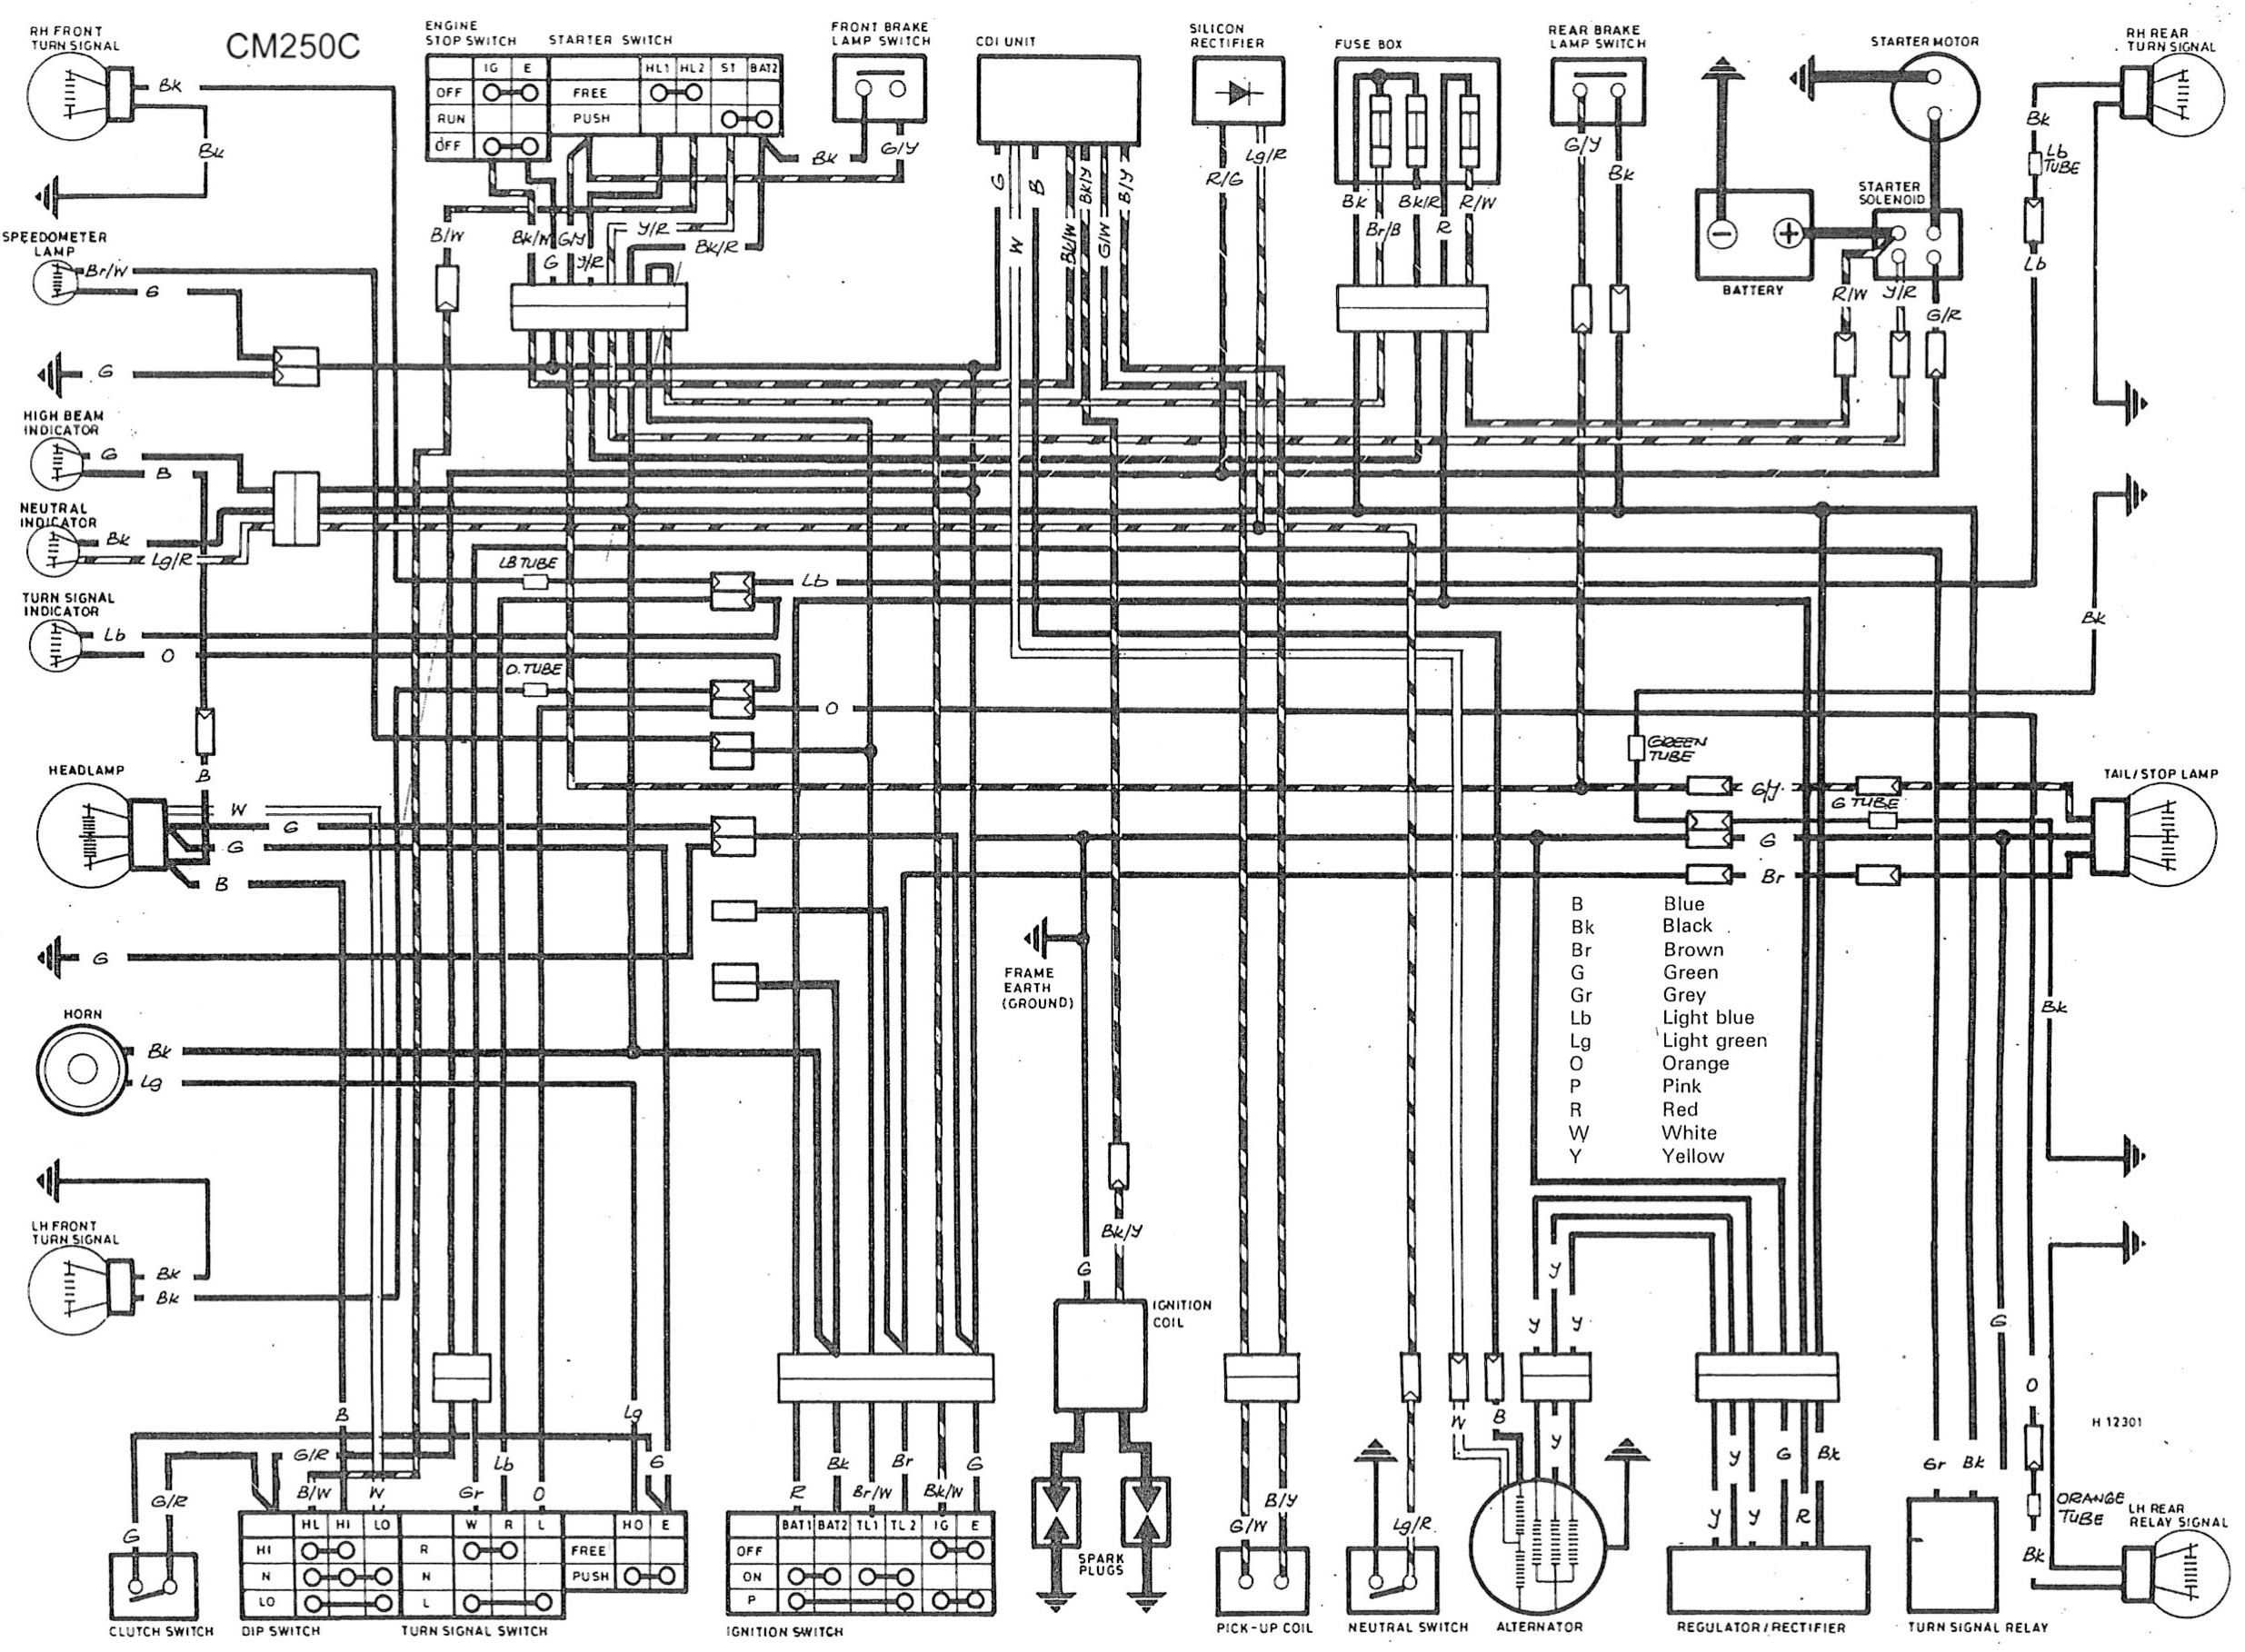 wirediagram?resize=750%2C552 diagrams xv750 wiring diagram 1985 xv750 wiring diagram 1985 yamaha virago 750 wiring diagram at aneh.co